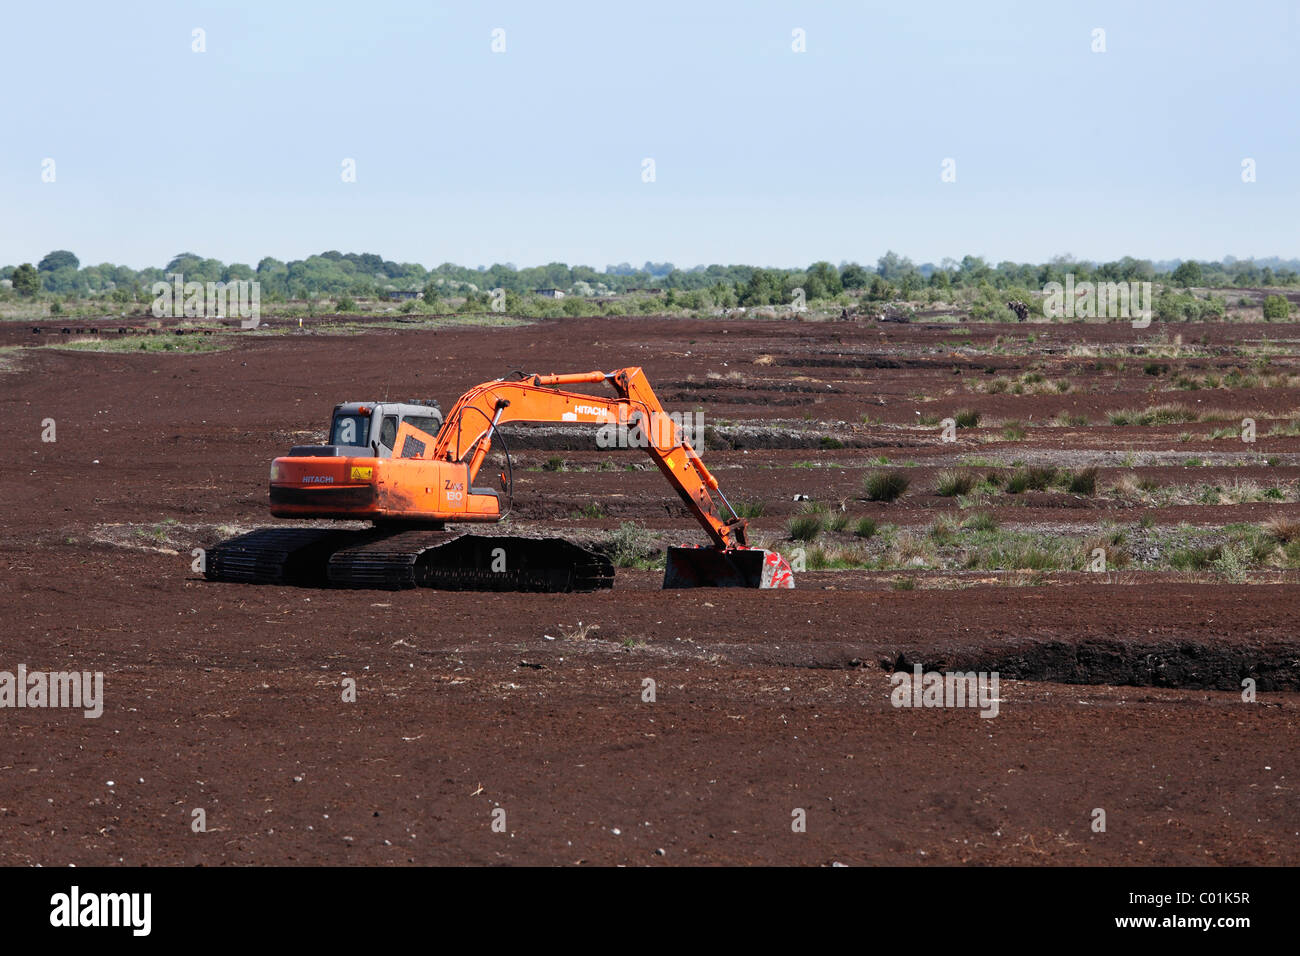 Peat harvest, Tullamore, County Offaly, Leinster province, Republic of Ireland, Europe - Stock Image